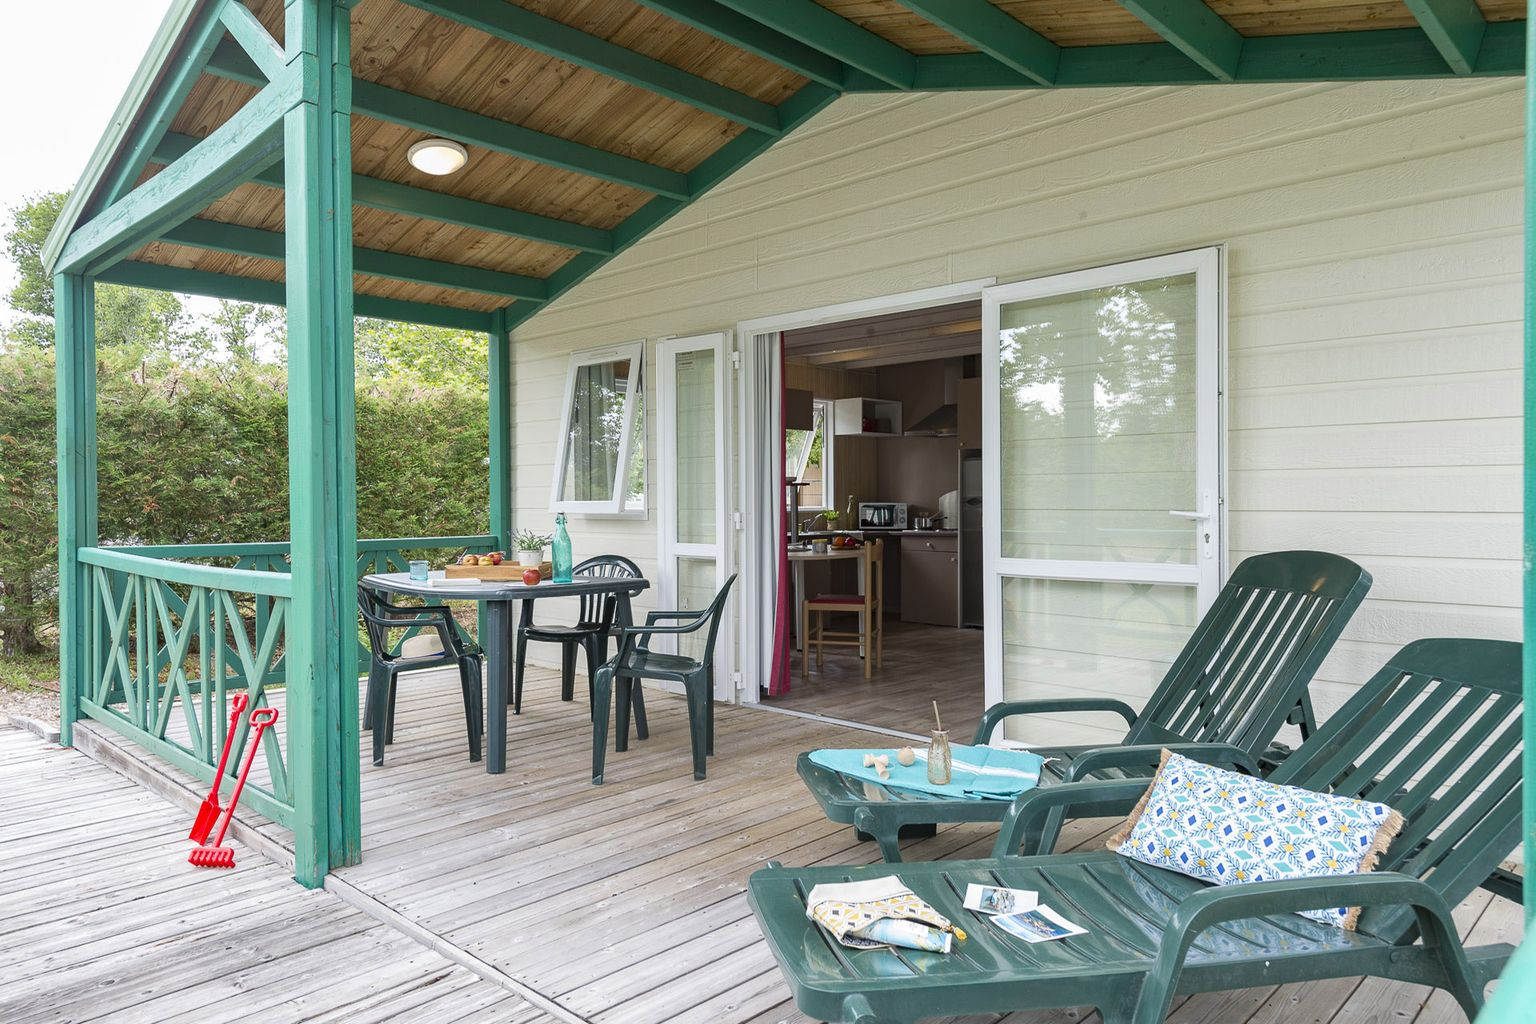 Location - Chalet 2 Chambres Pmr **** - Camping Sandaya Les Alicourts